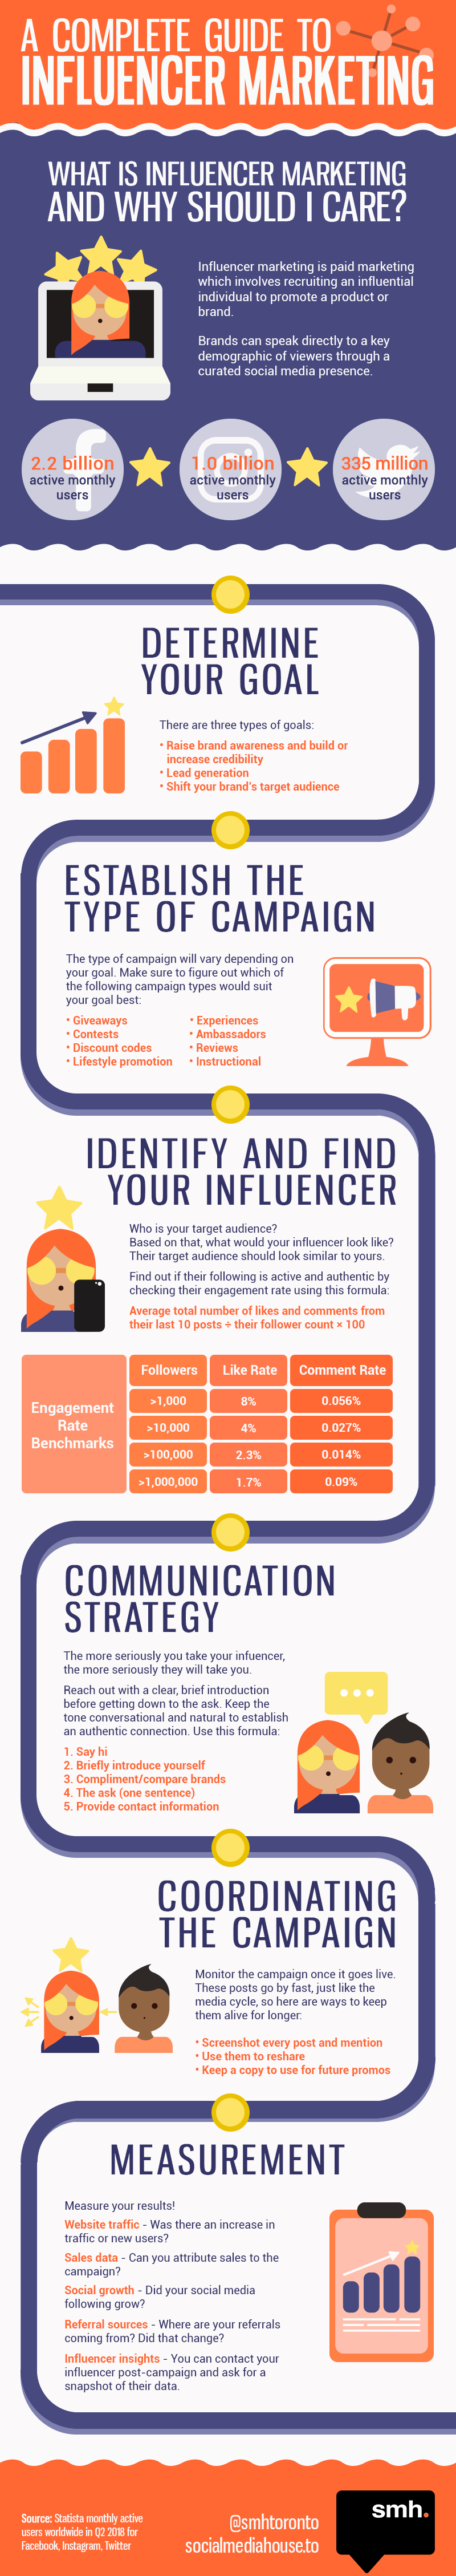 influencer-marketing-infographic-FINAL-1.png